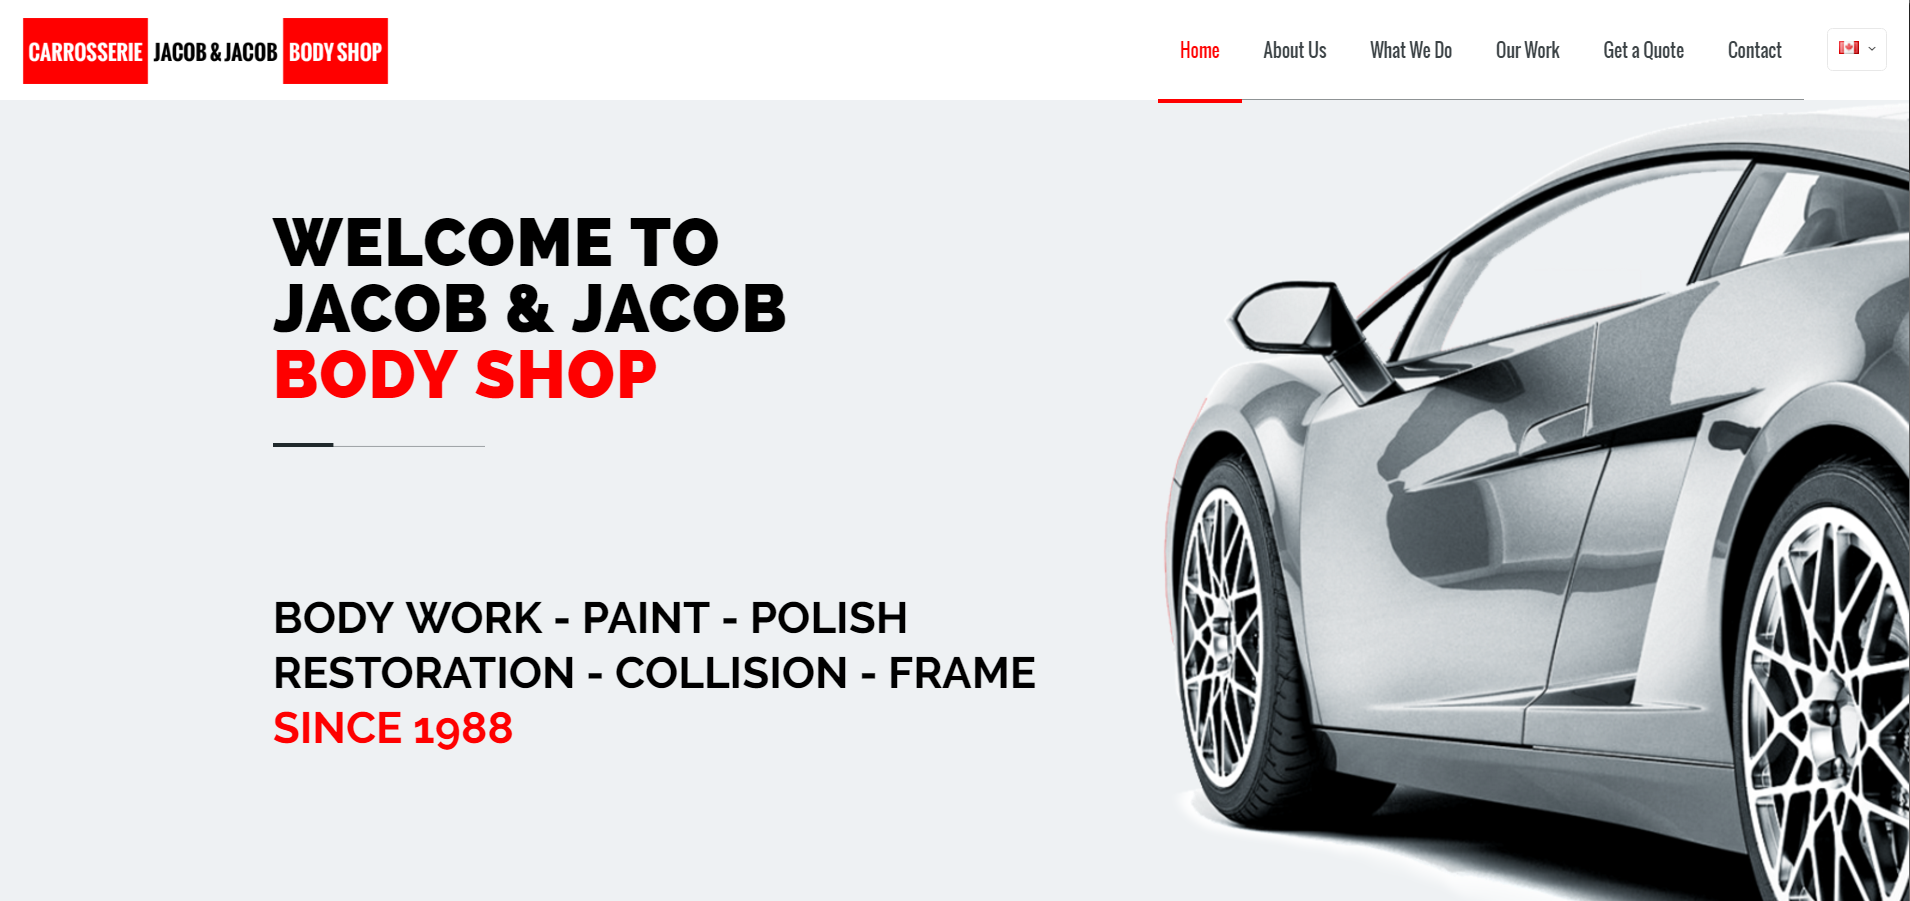 Jacob & Jacob Auto Body Shop